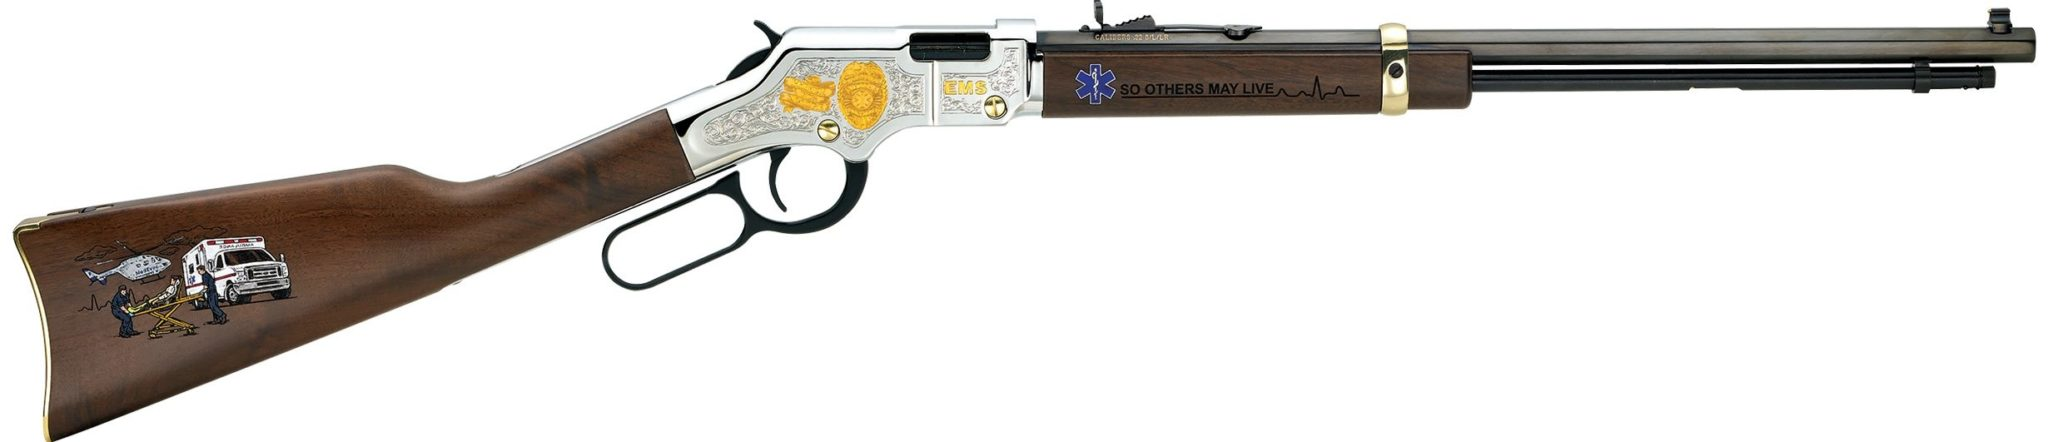 Henry Repeating Arms EMS TRIBUTE EDITION 22 LR